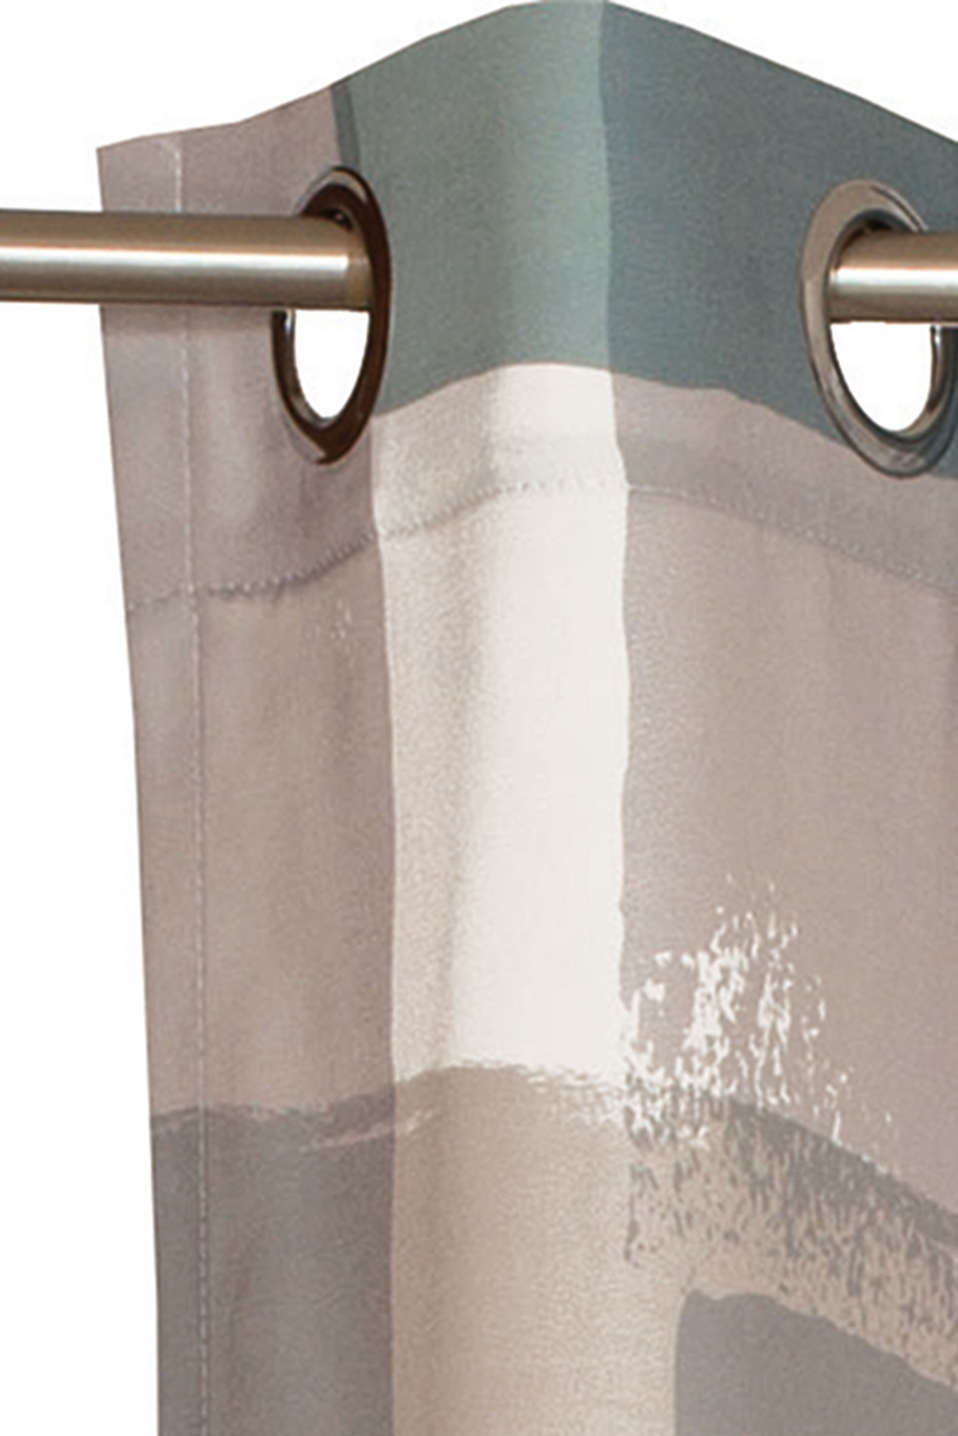 Eyelet curtain with a graphic print